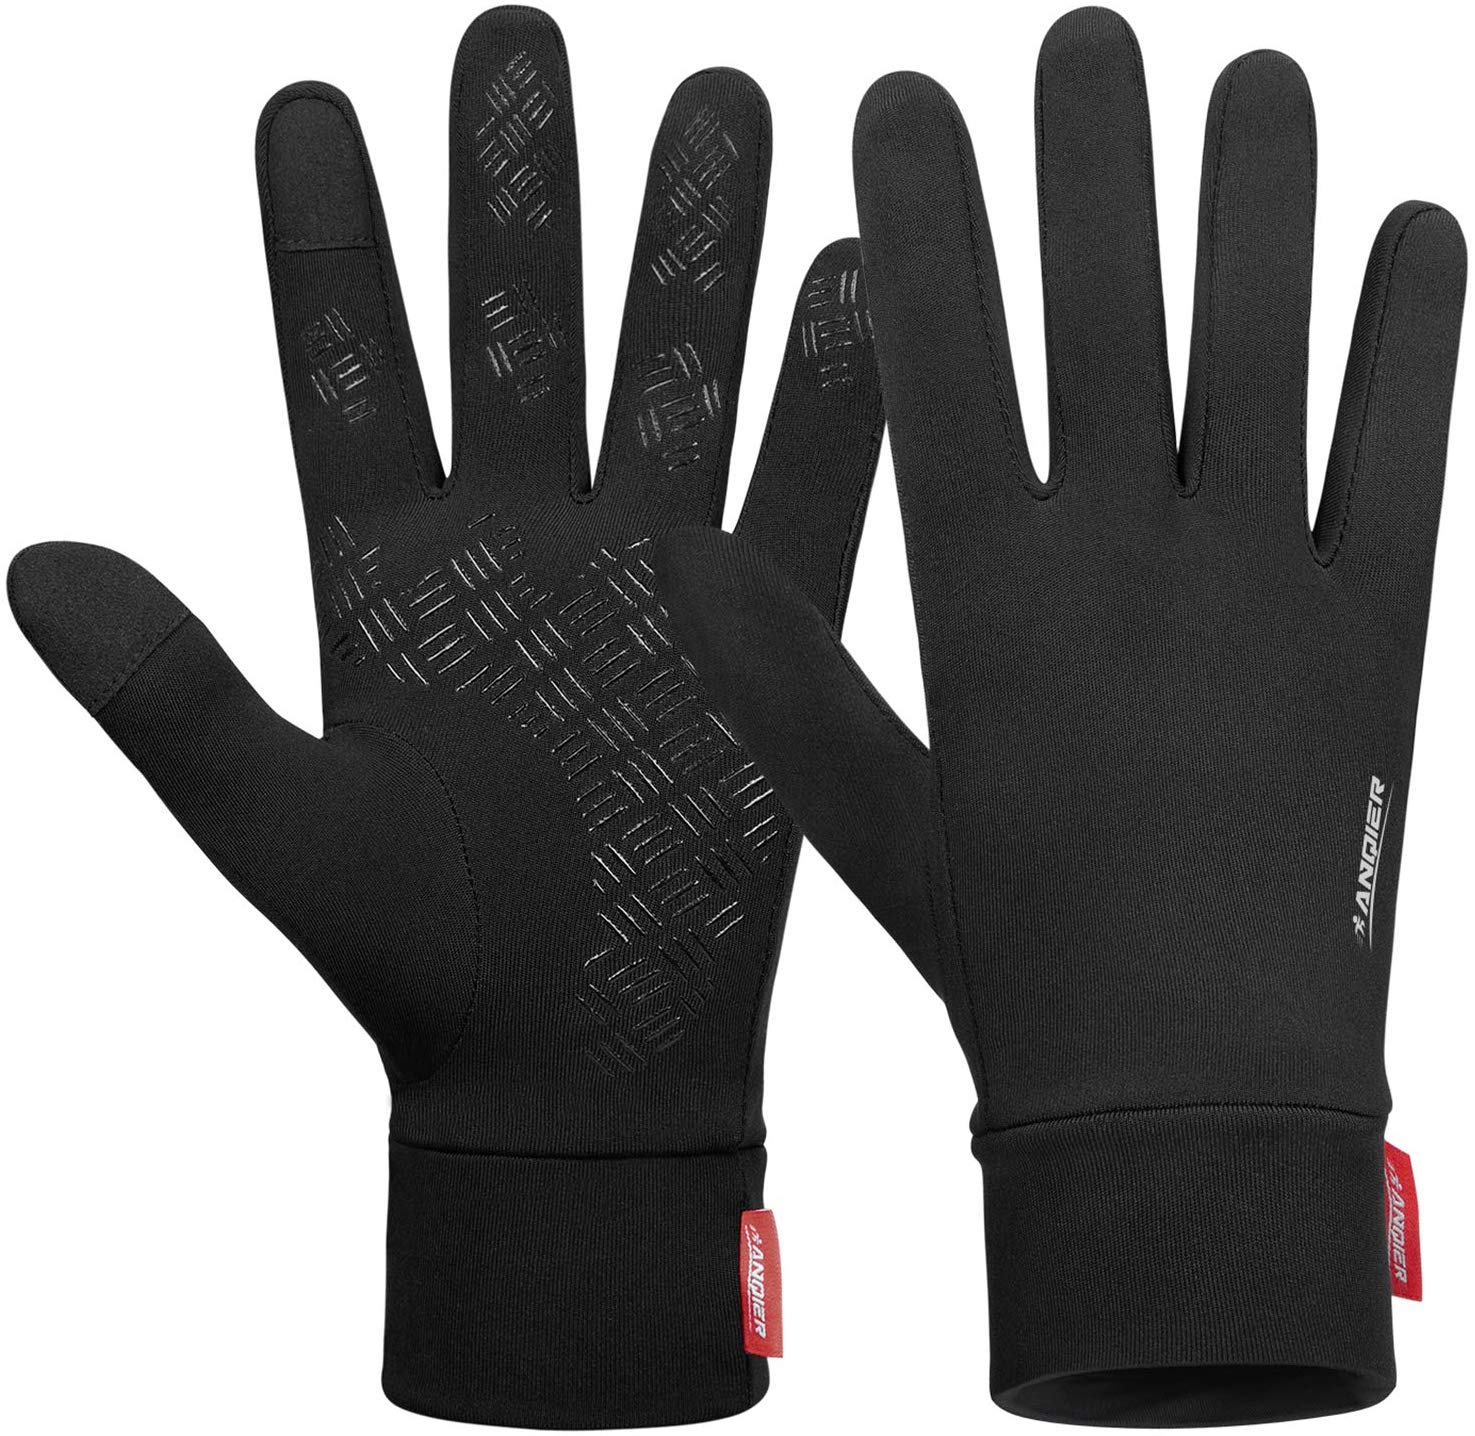 Lanyi Running Sports Gloves Compression Lightweight Windproof Anti-Slip Touchscreen Warm Liner Cycling Work Gloves